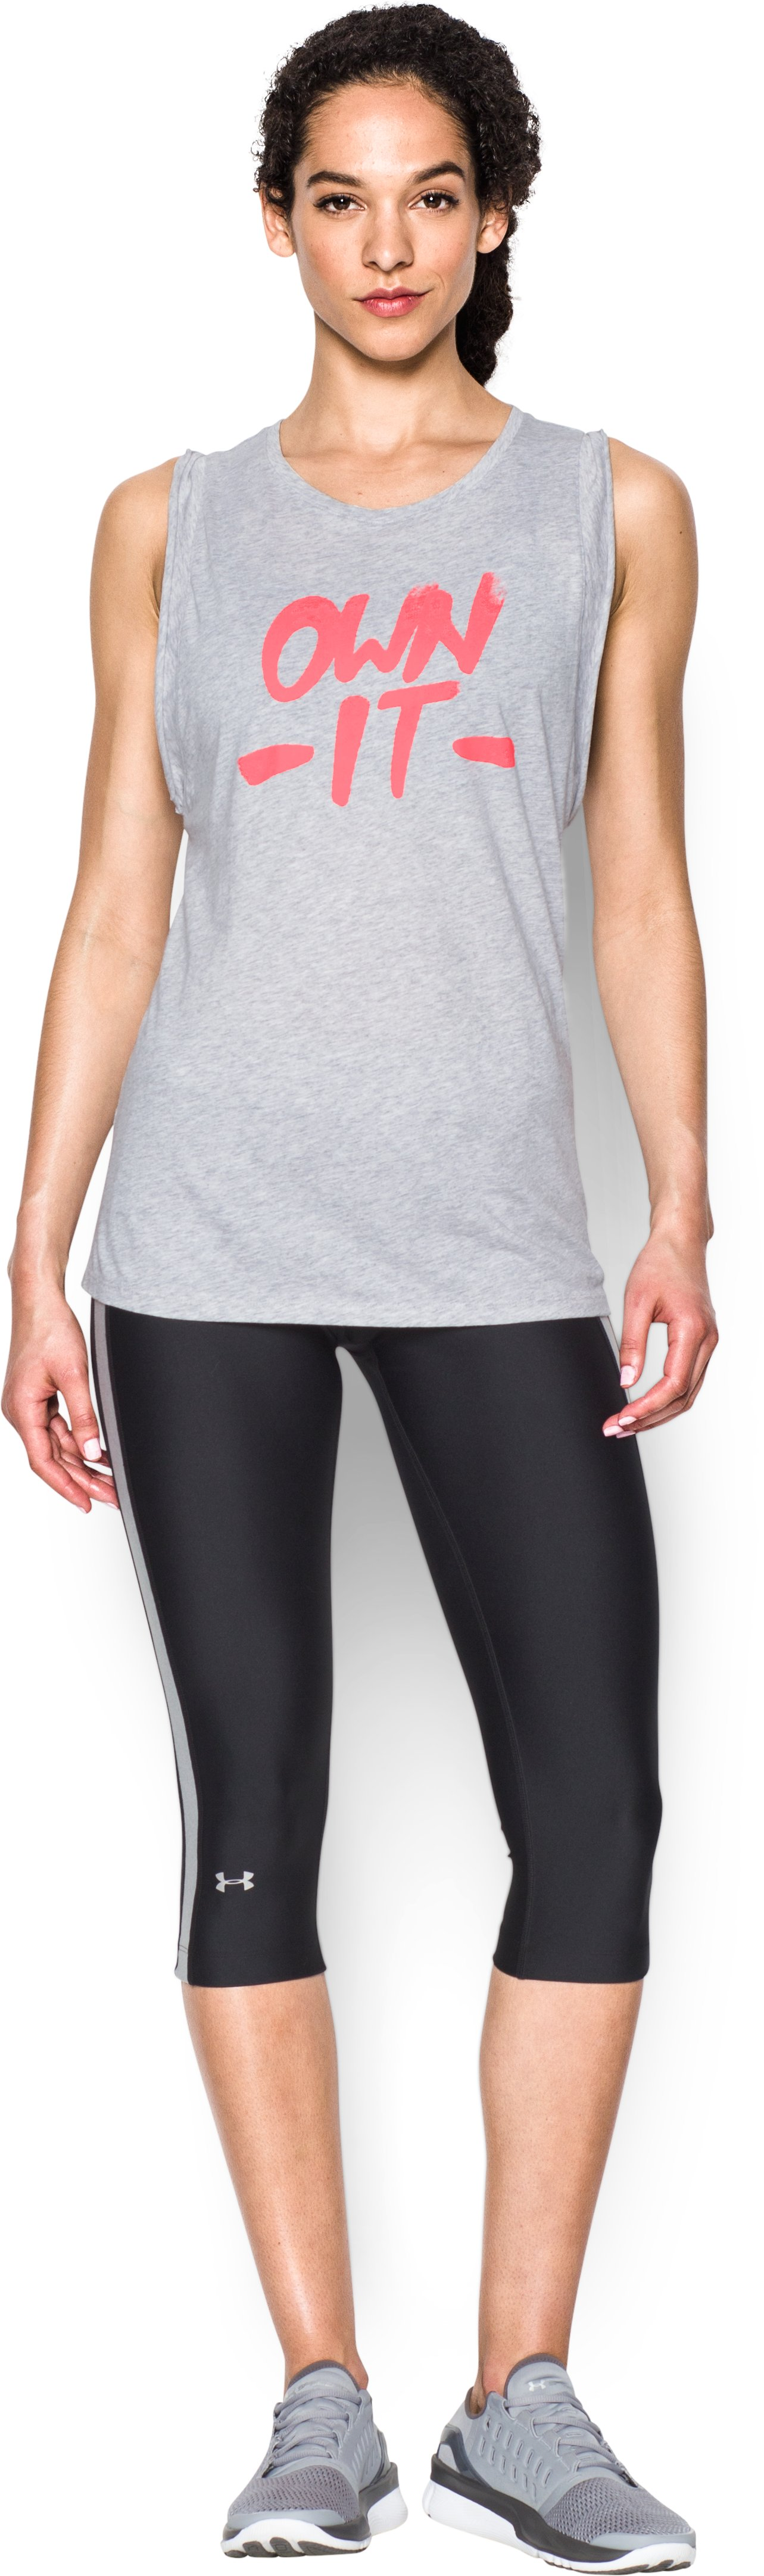 Women's UA Own it Muscle Tank , AIR FORCE GRAY HEATHER, Front